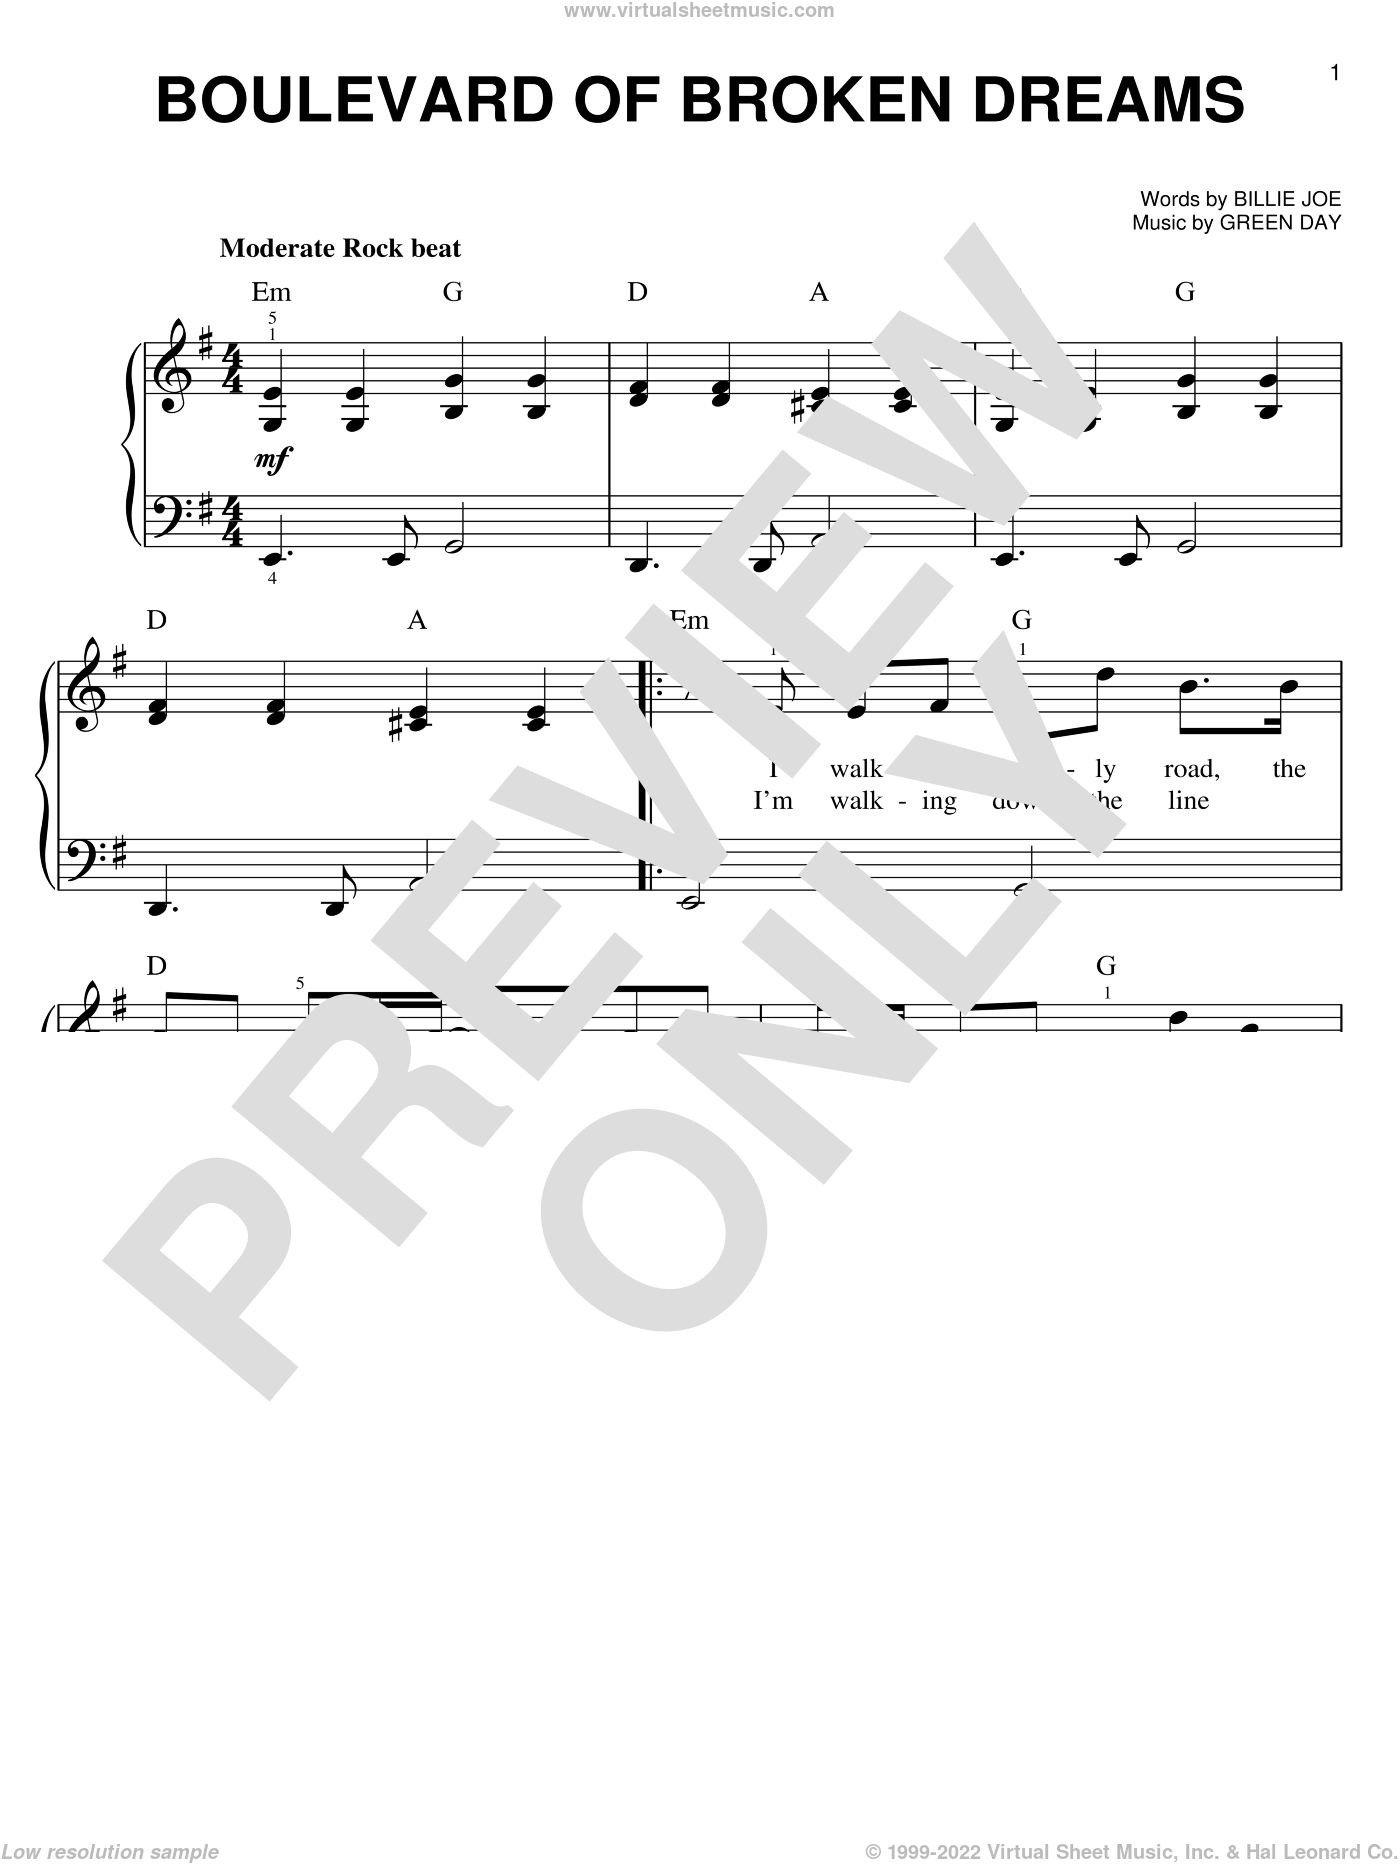 Boulevard Of Broken Dreams sheet music for piano solo by Green Day, easy skill level